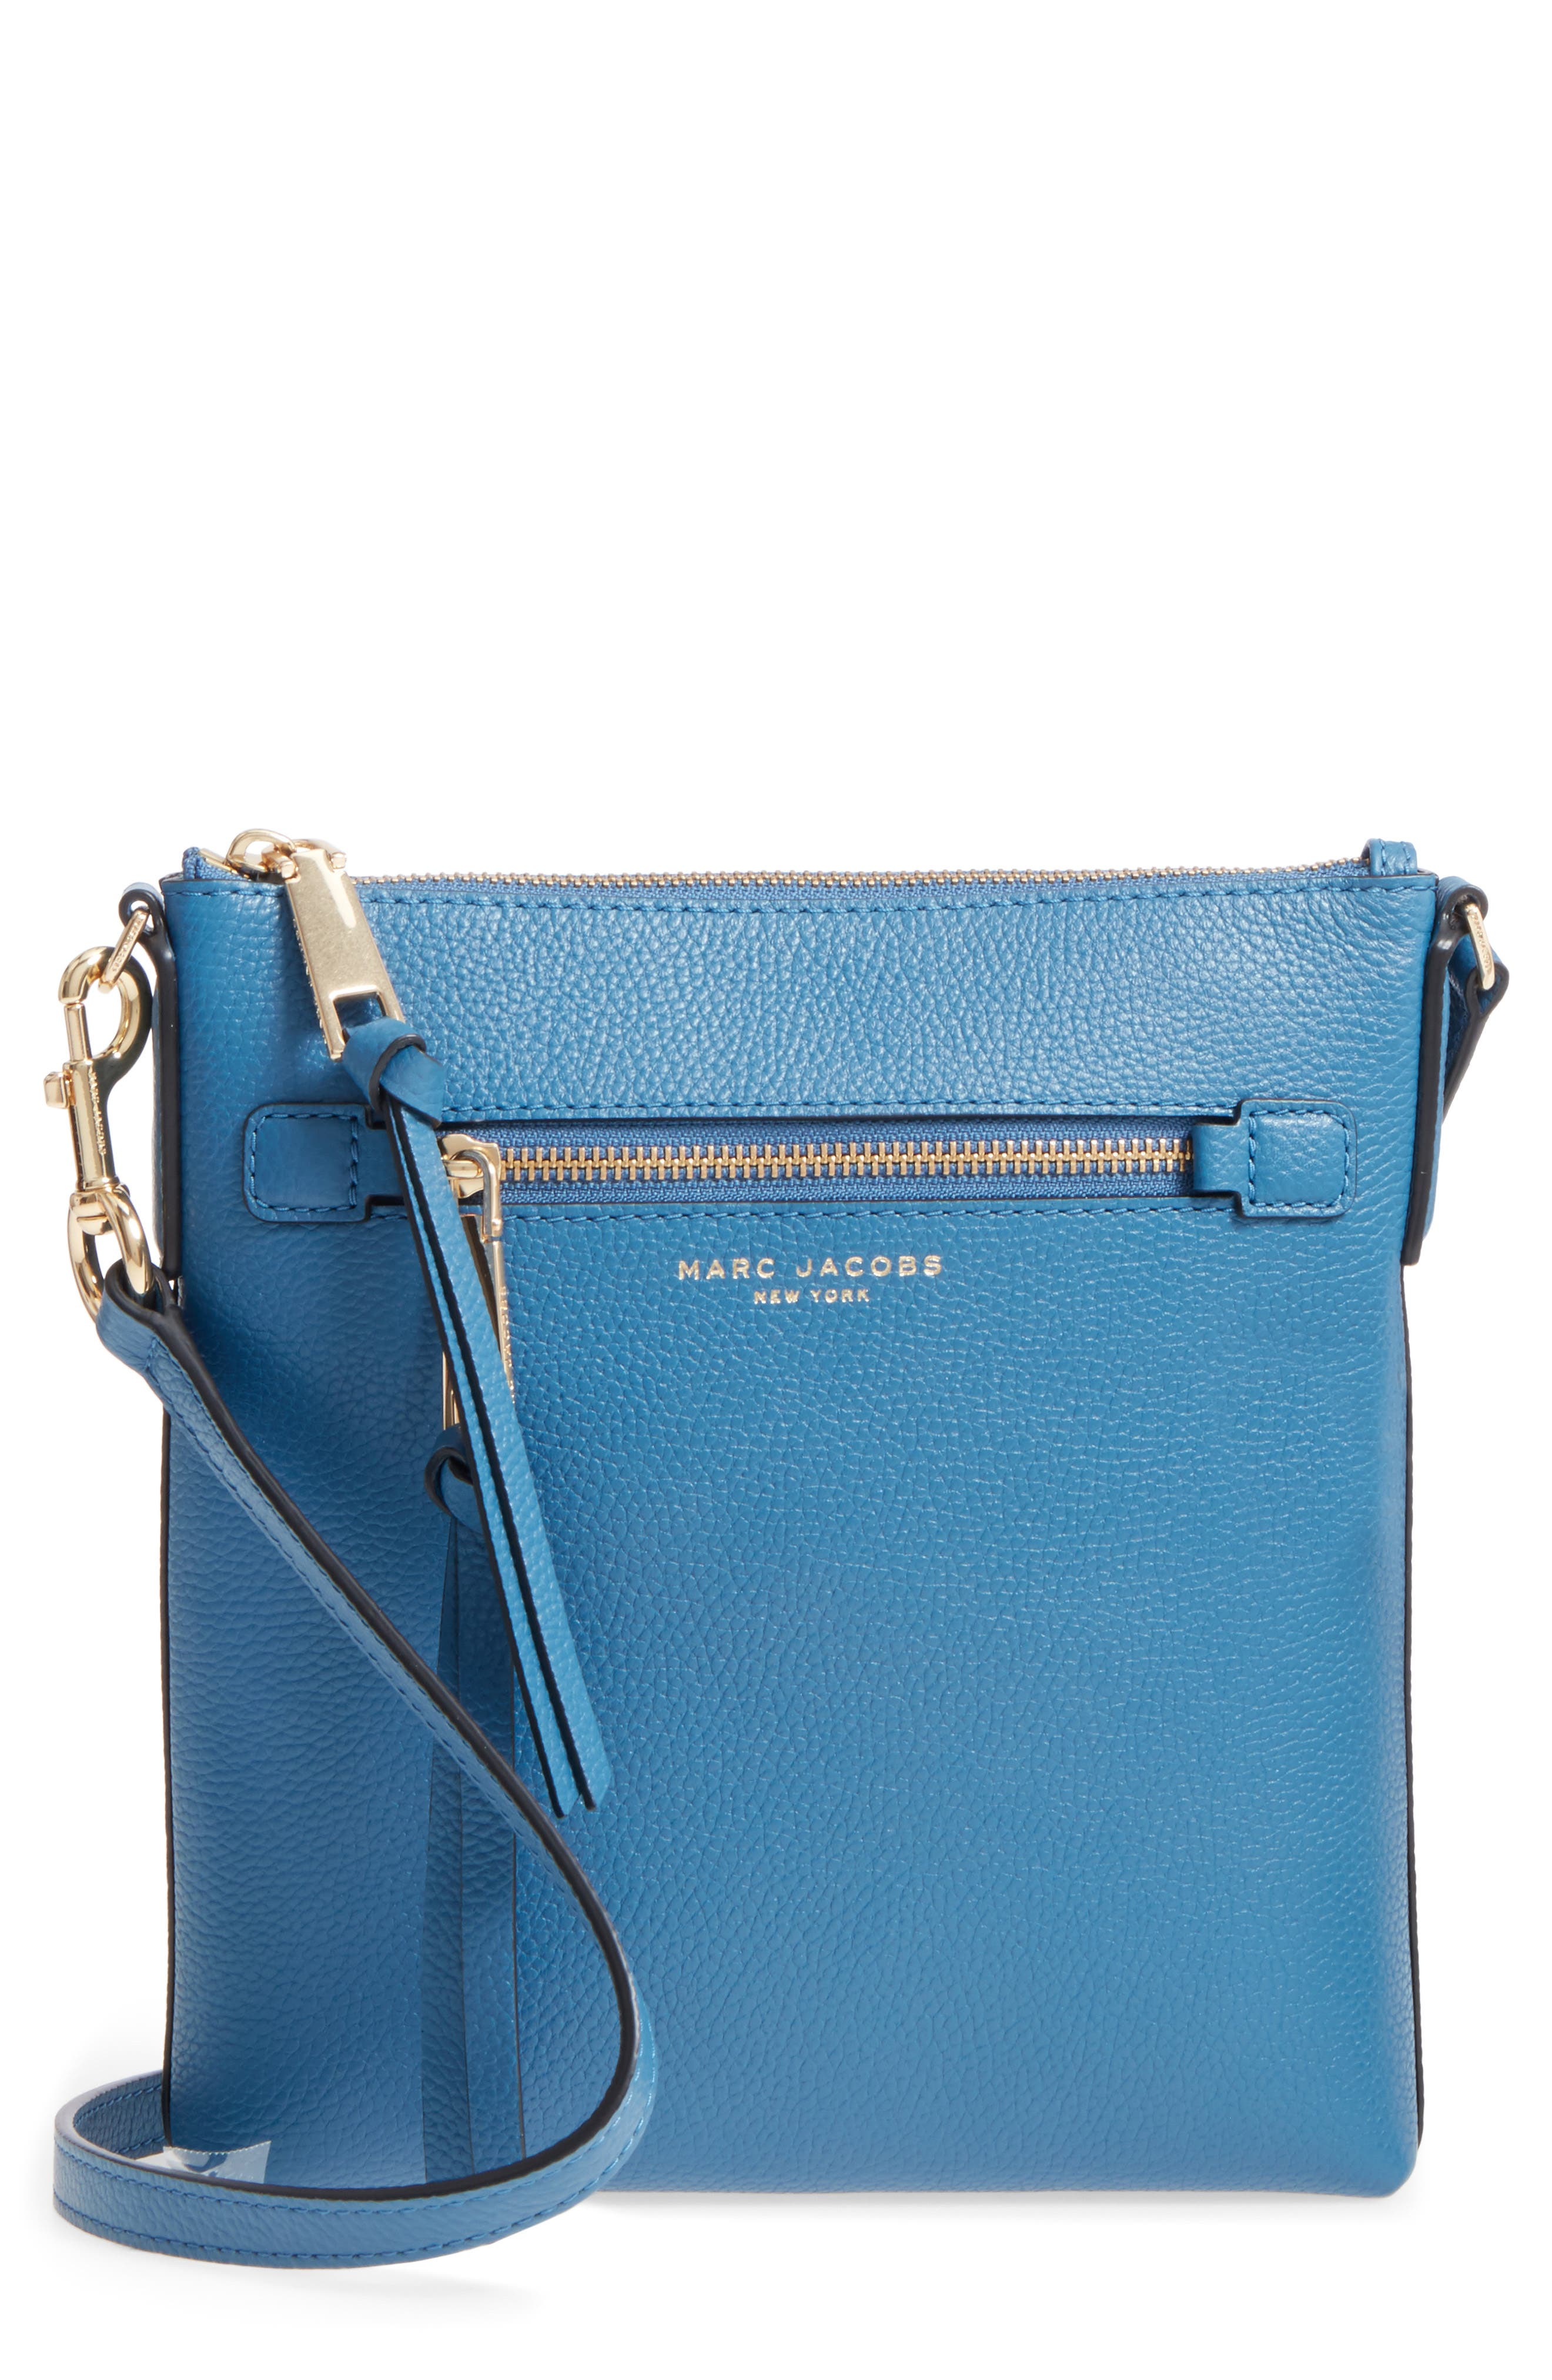 Recruit North/South Leather Crossbody Bag,                             Main thumbnail 1, color,                             476